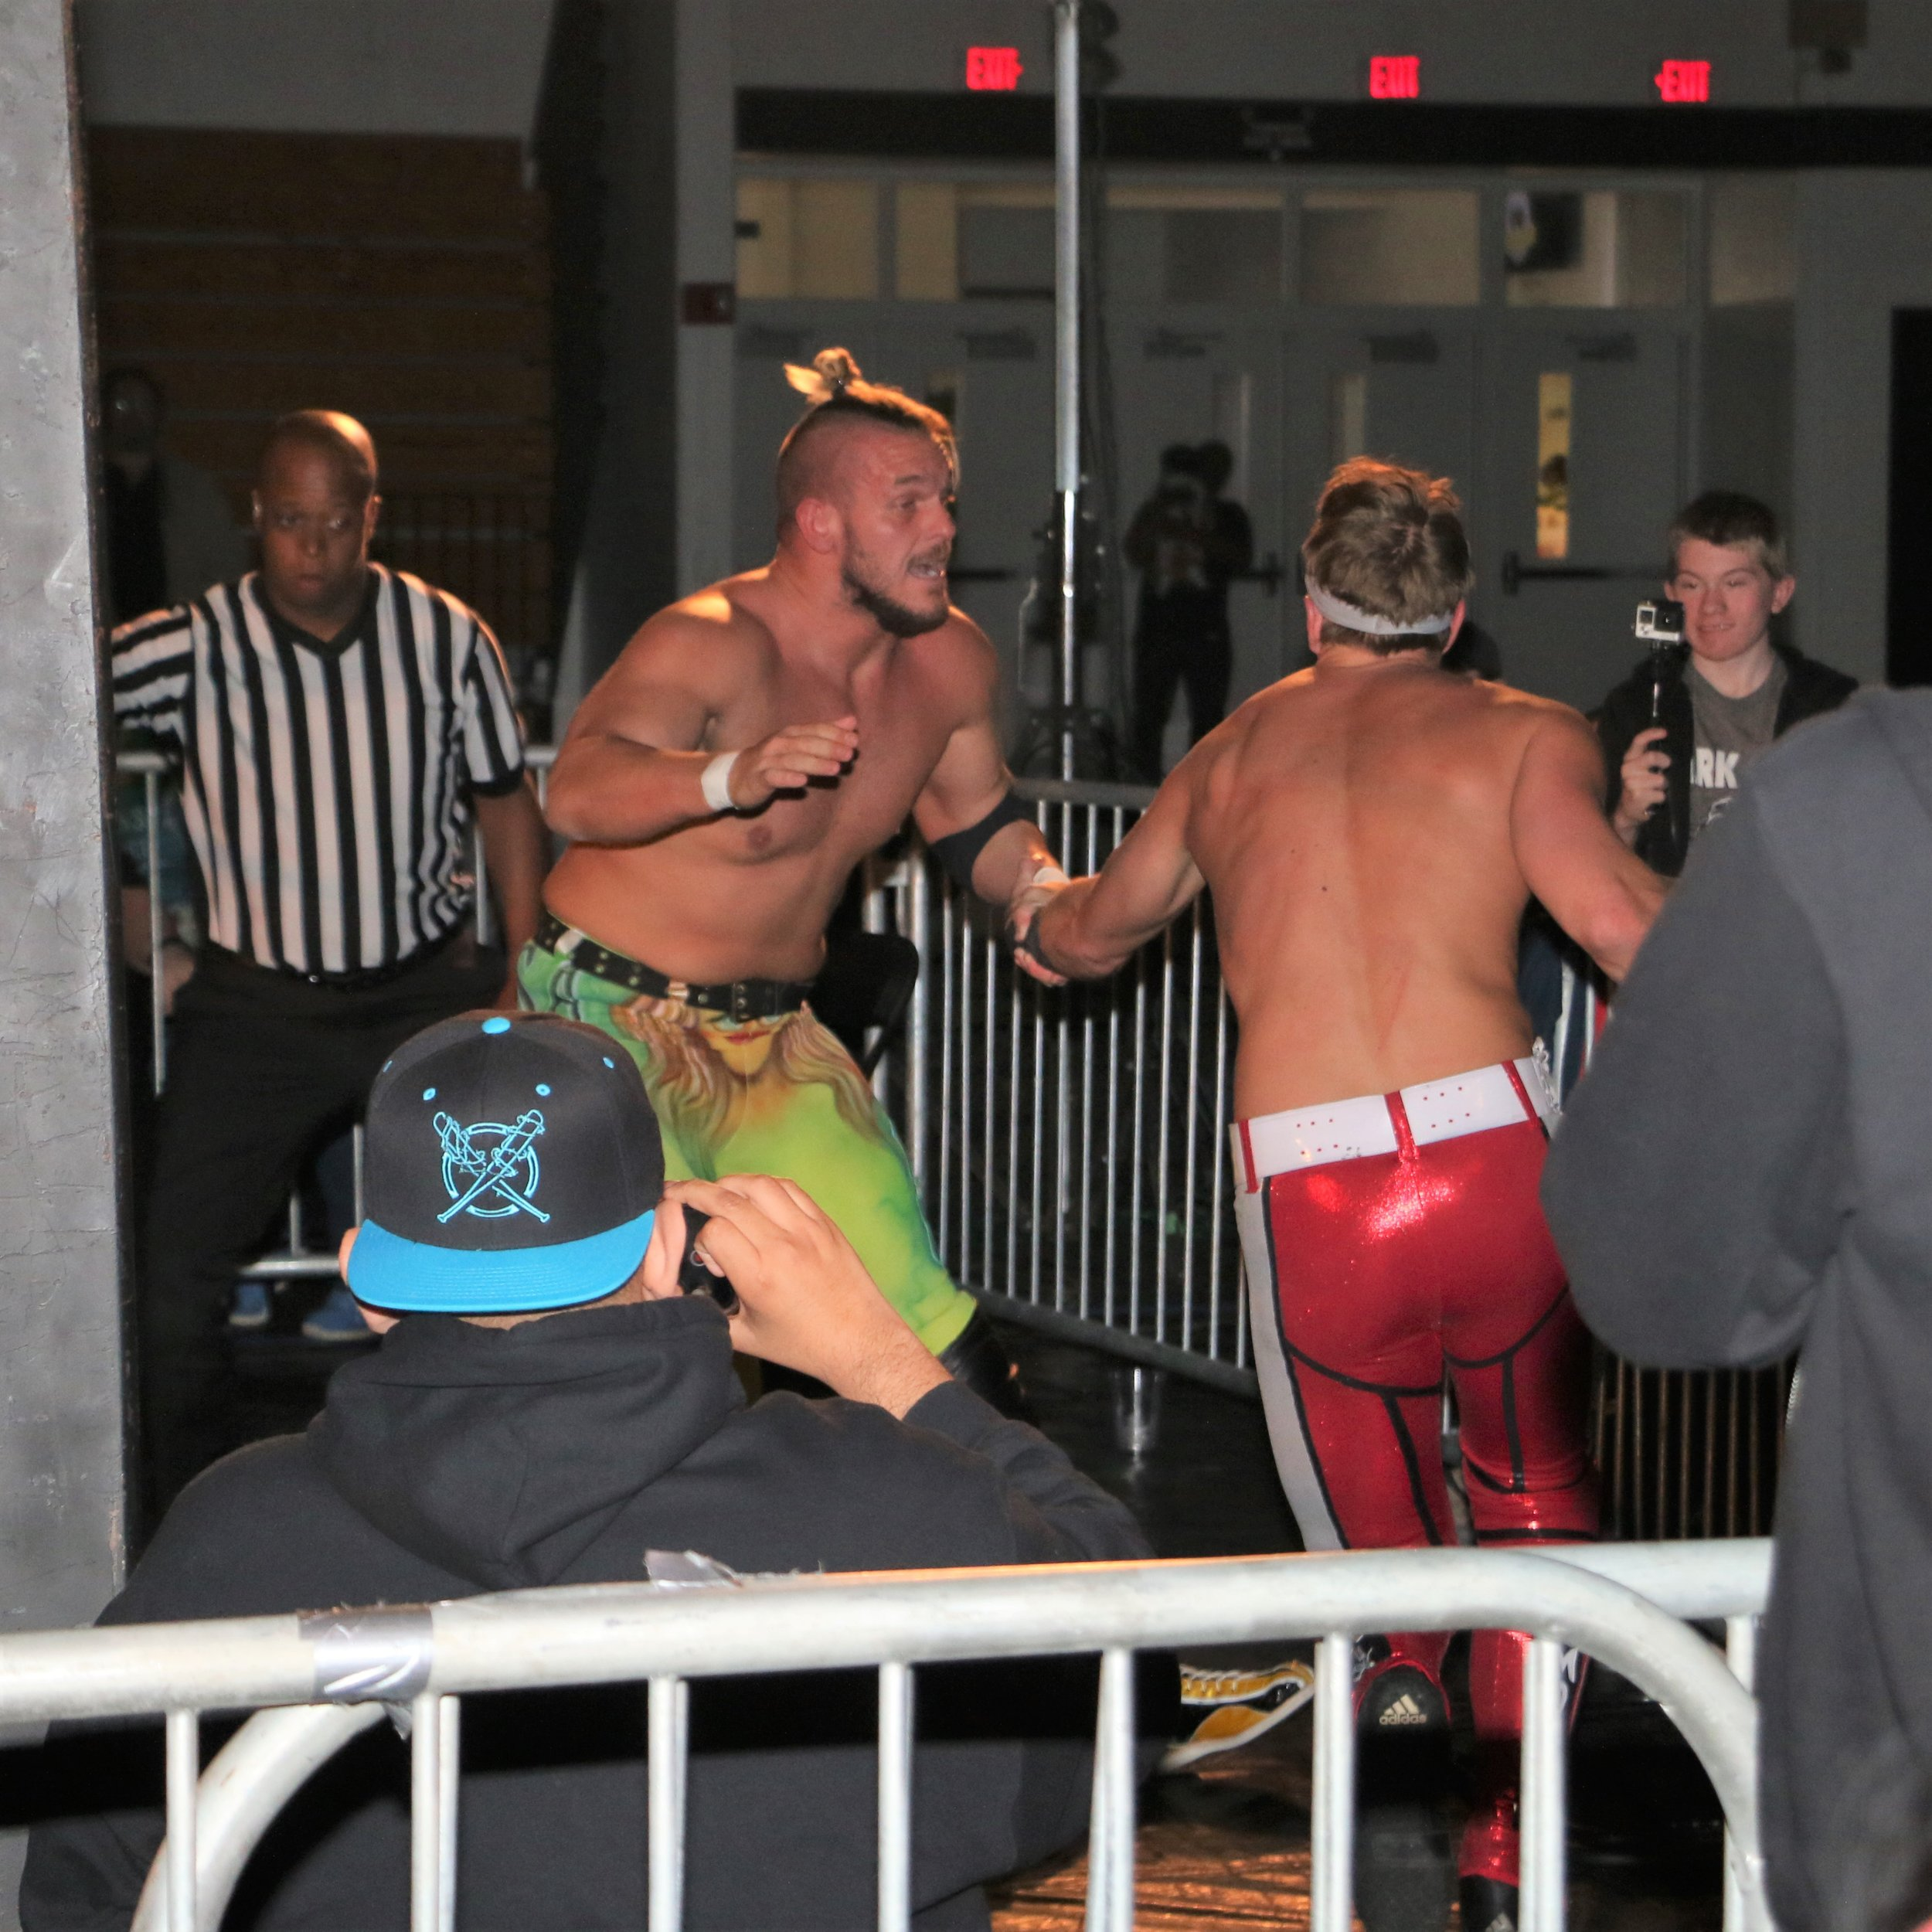 The No DQ match quickly escalated into a war outisde the ring as Sam Adonis whips Pat Monix into the barrier.